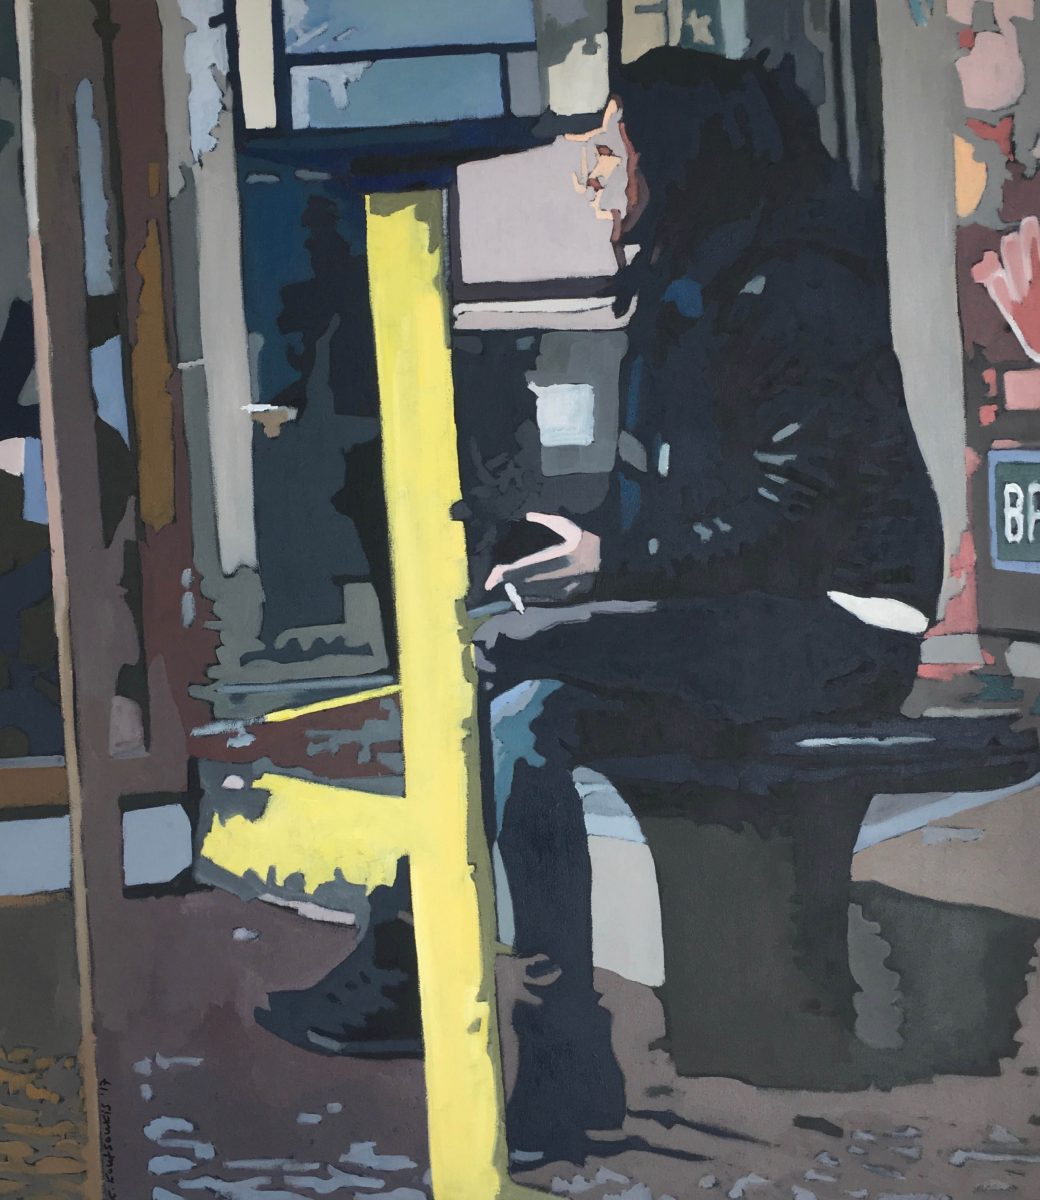 KROMA / Christos Koutsoukis / flux / The bus stop, 80 x 70 cm, Oil on canvas